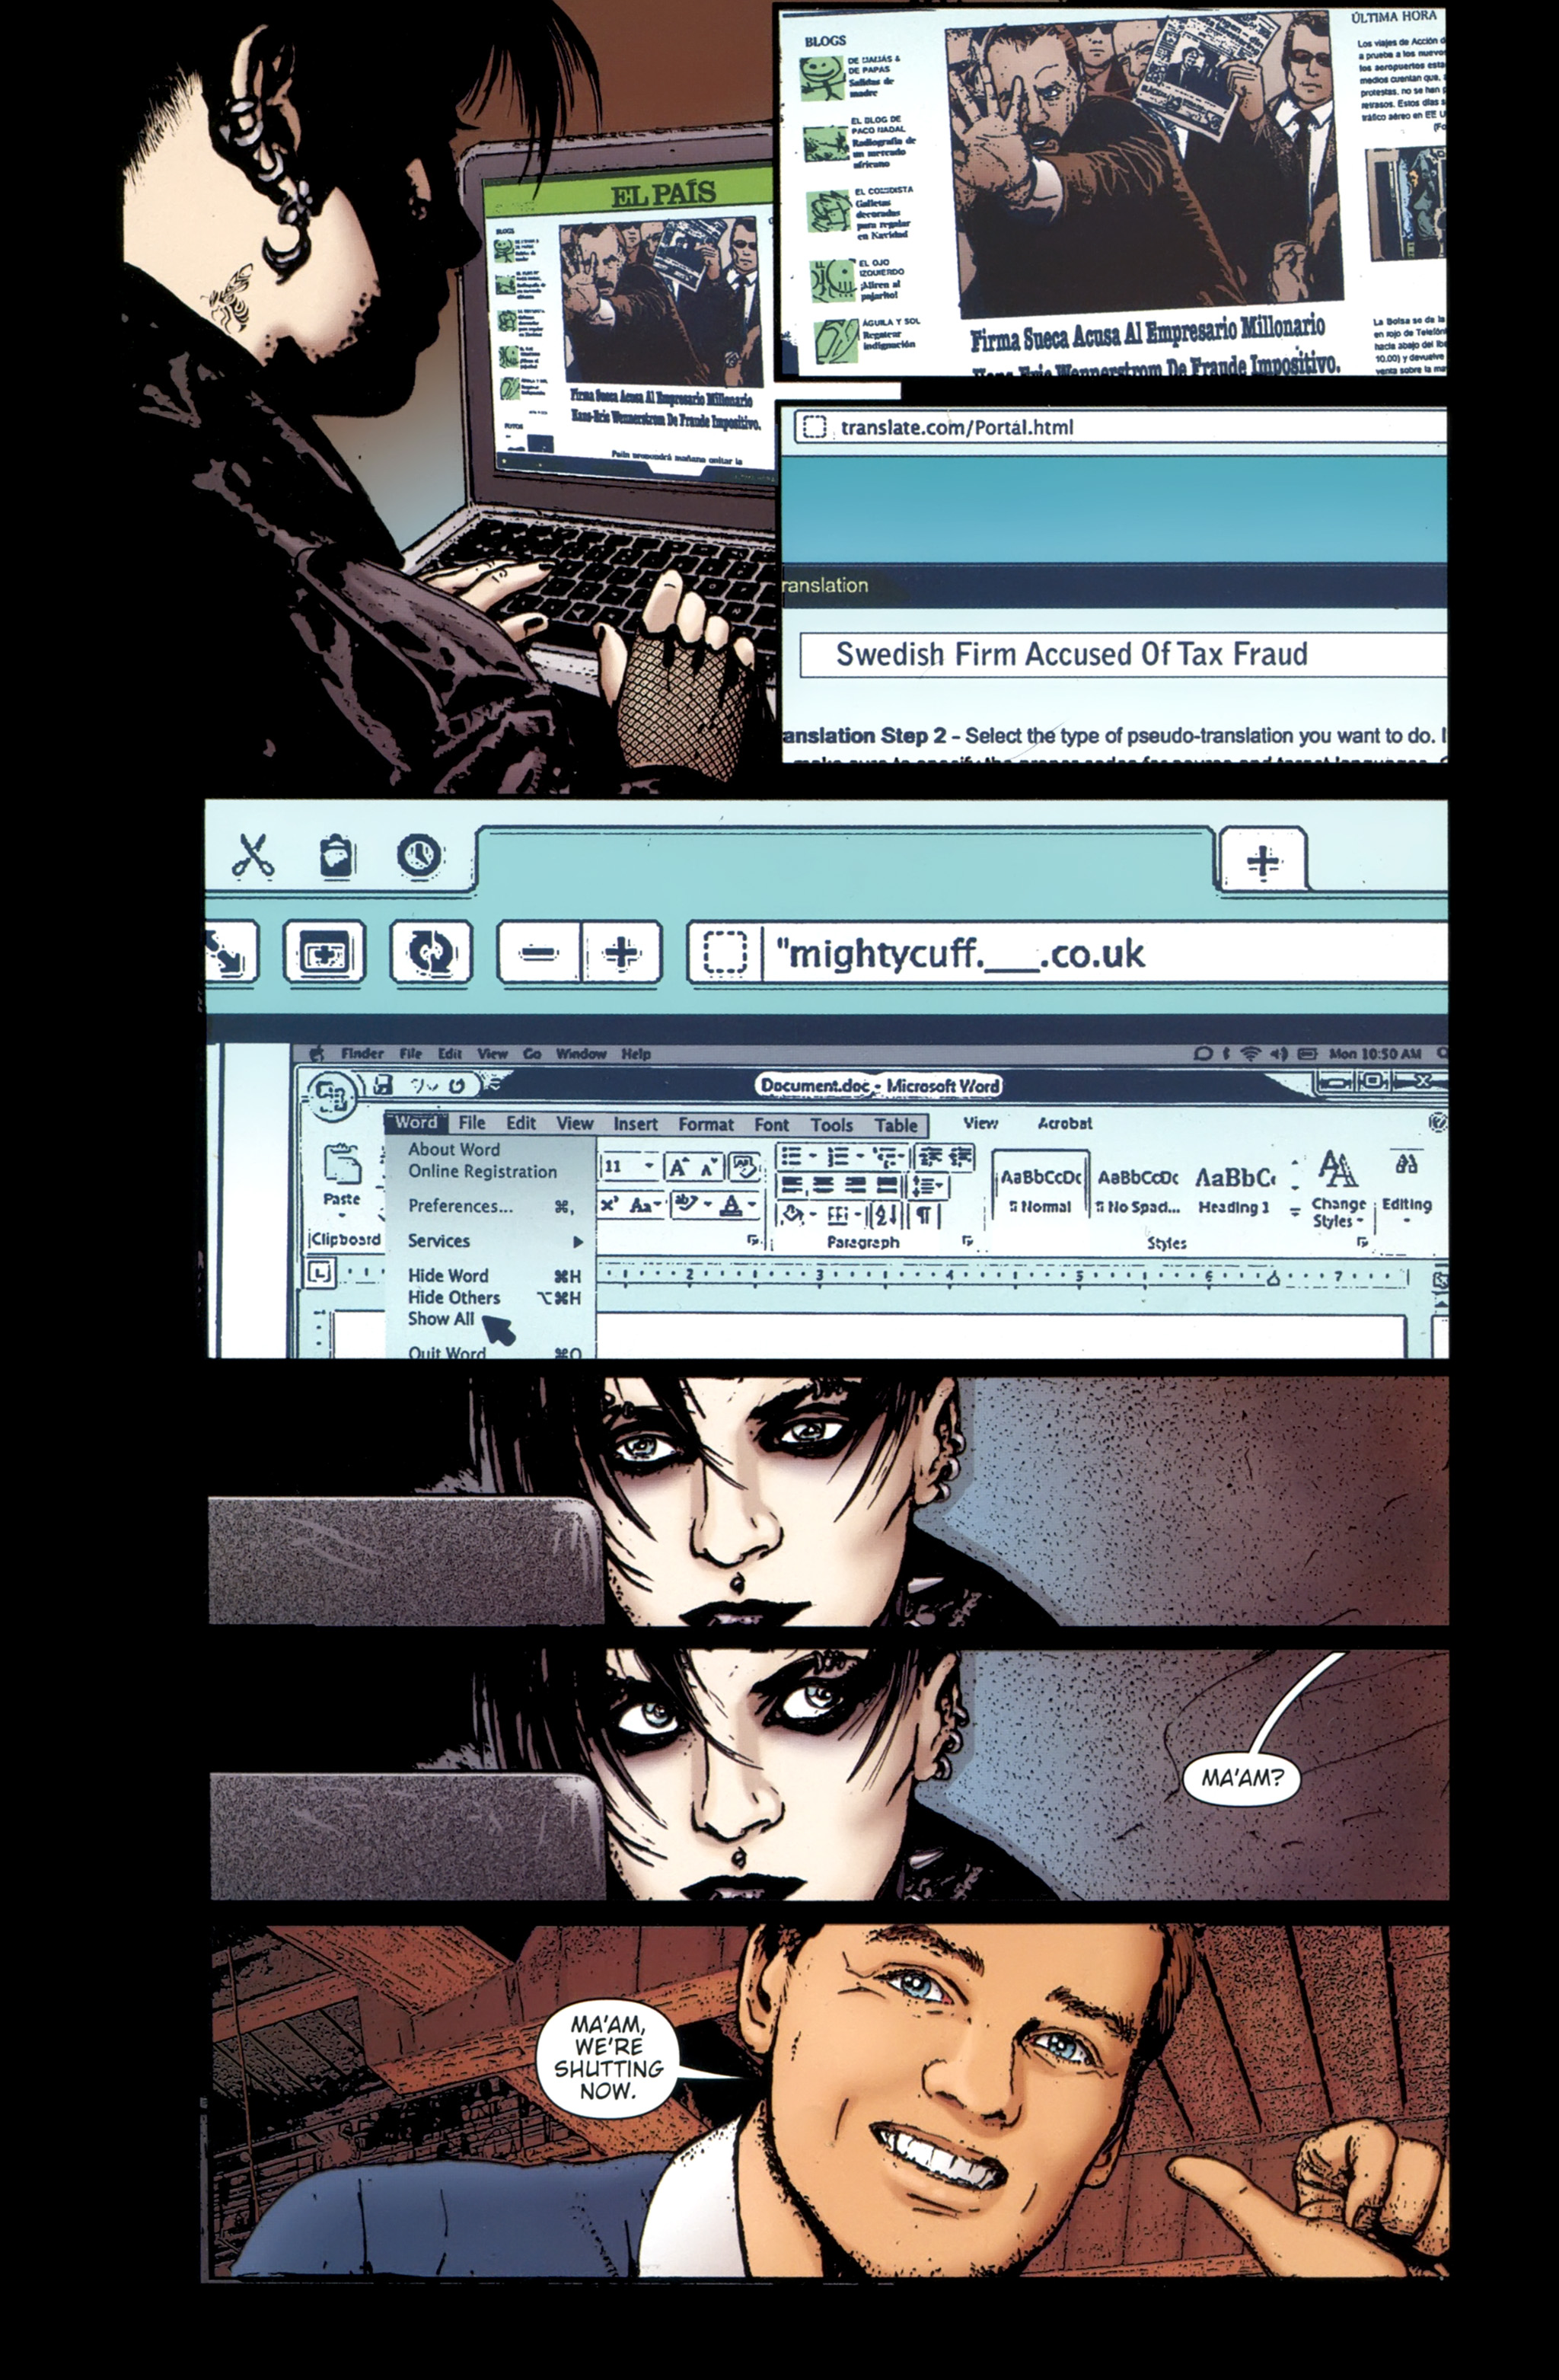 Read online The Girl With the Dragon Tattoo comic -  Issue # TPB 1 - 95